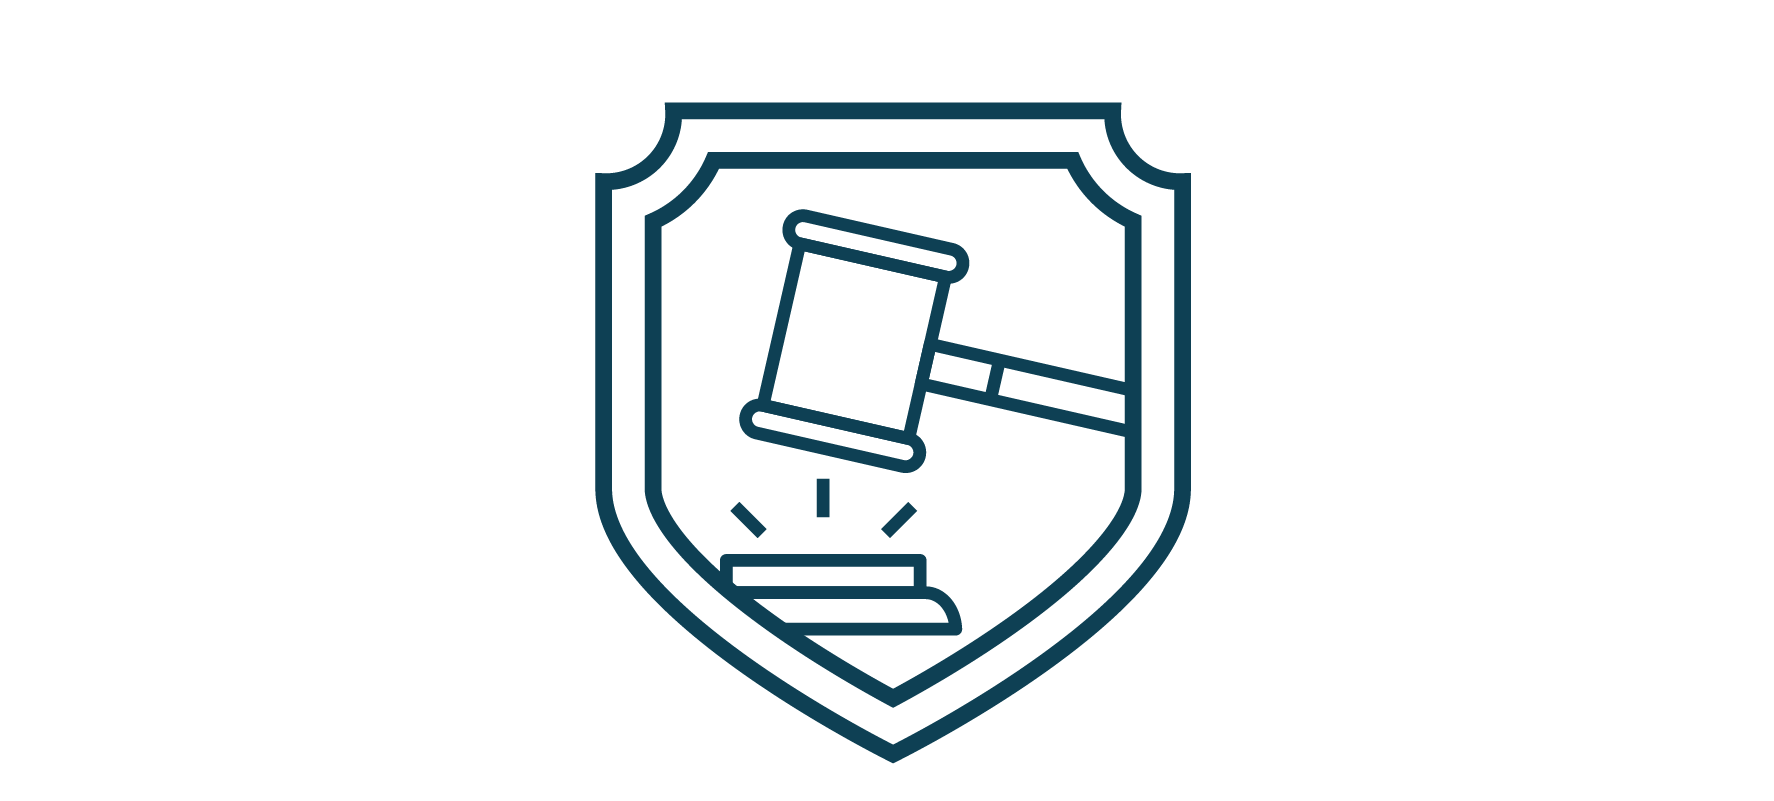 Criminal Defence Shield Icon for Shultz Law in Wichita.png